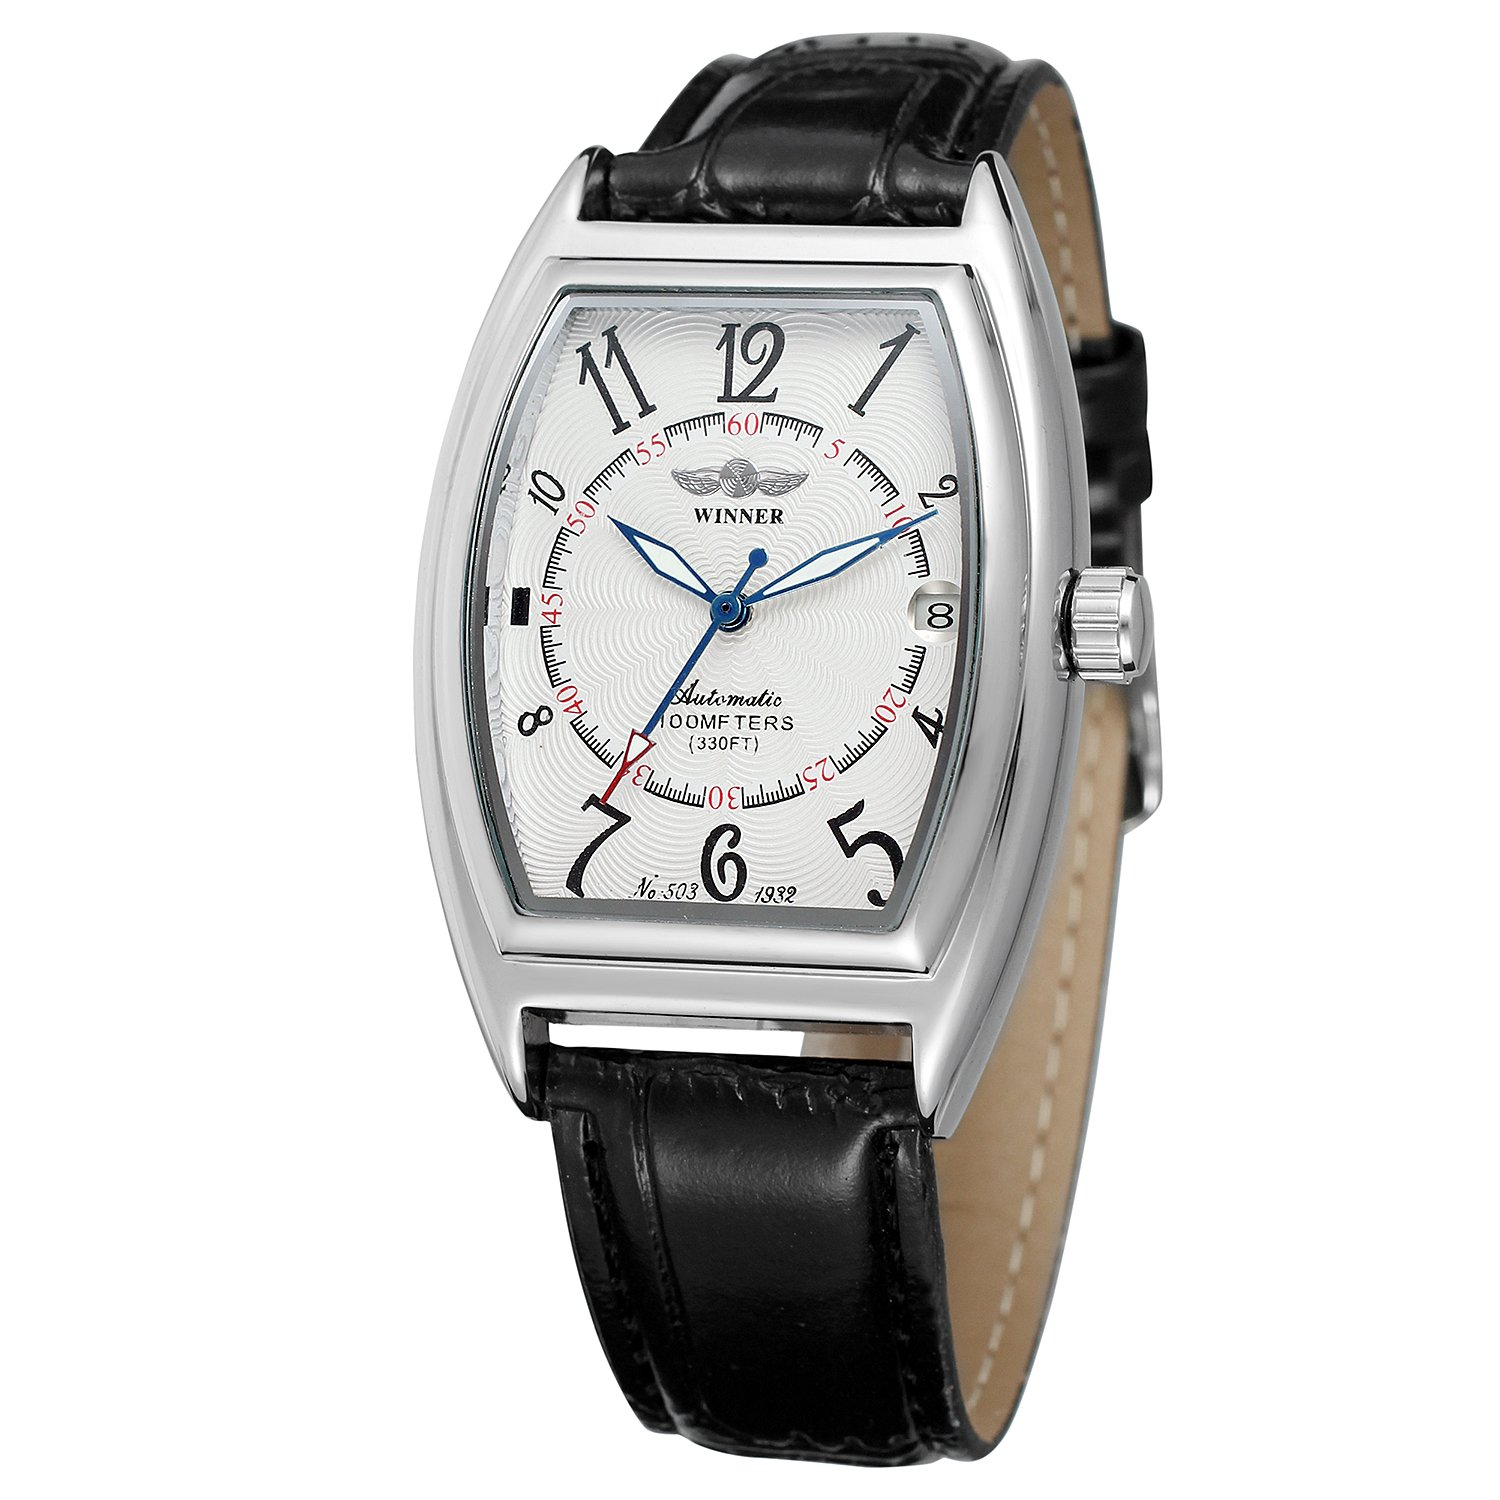 Amazon.com: FORSINING Mens Automatic Watch Top Luxury Brand Relojes Date Function Tonneau Shape Fashion Leather Watch: Watches